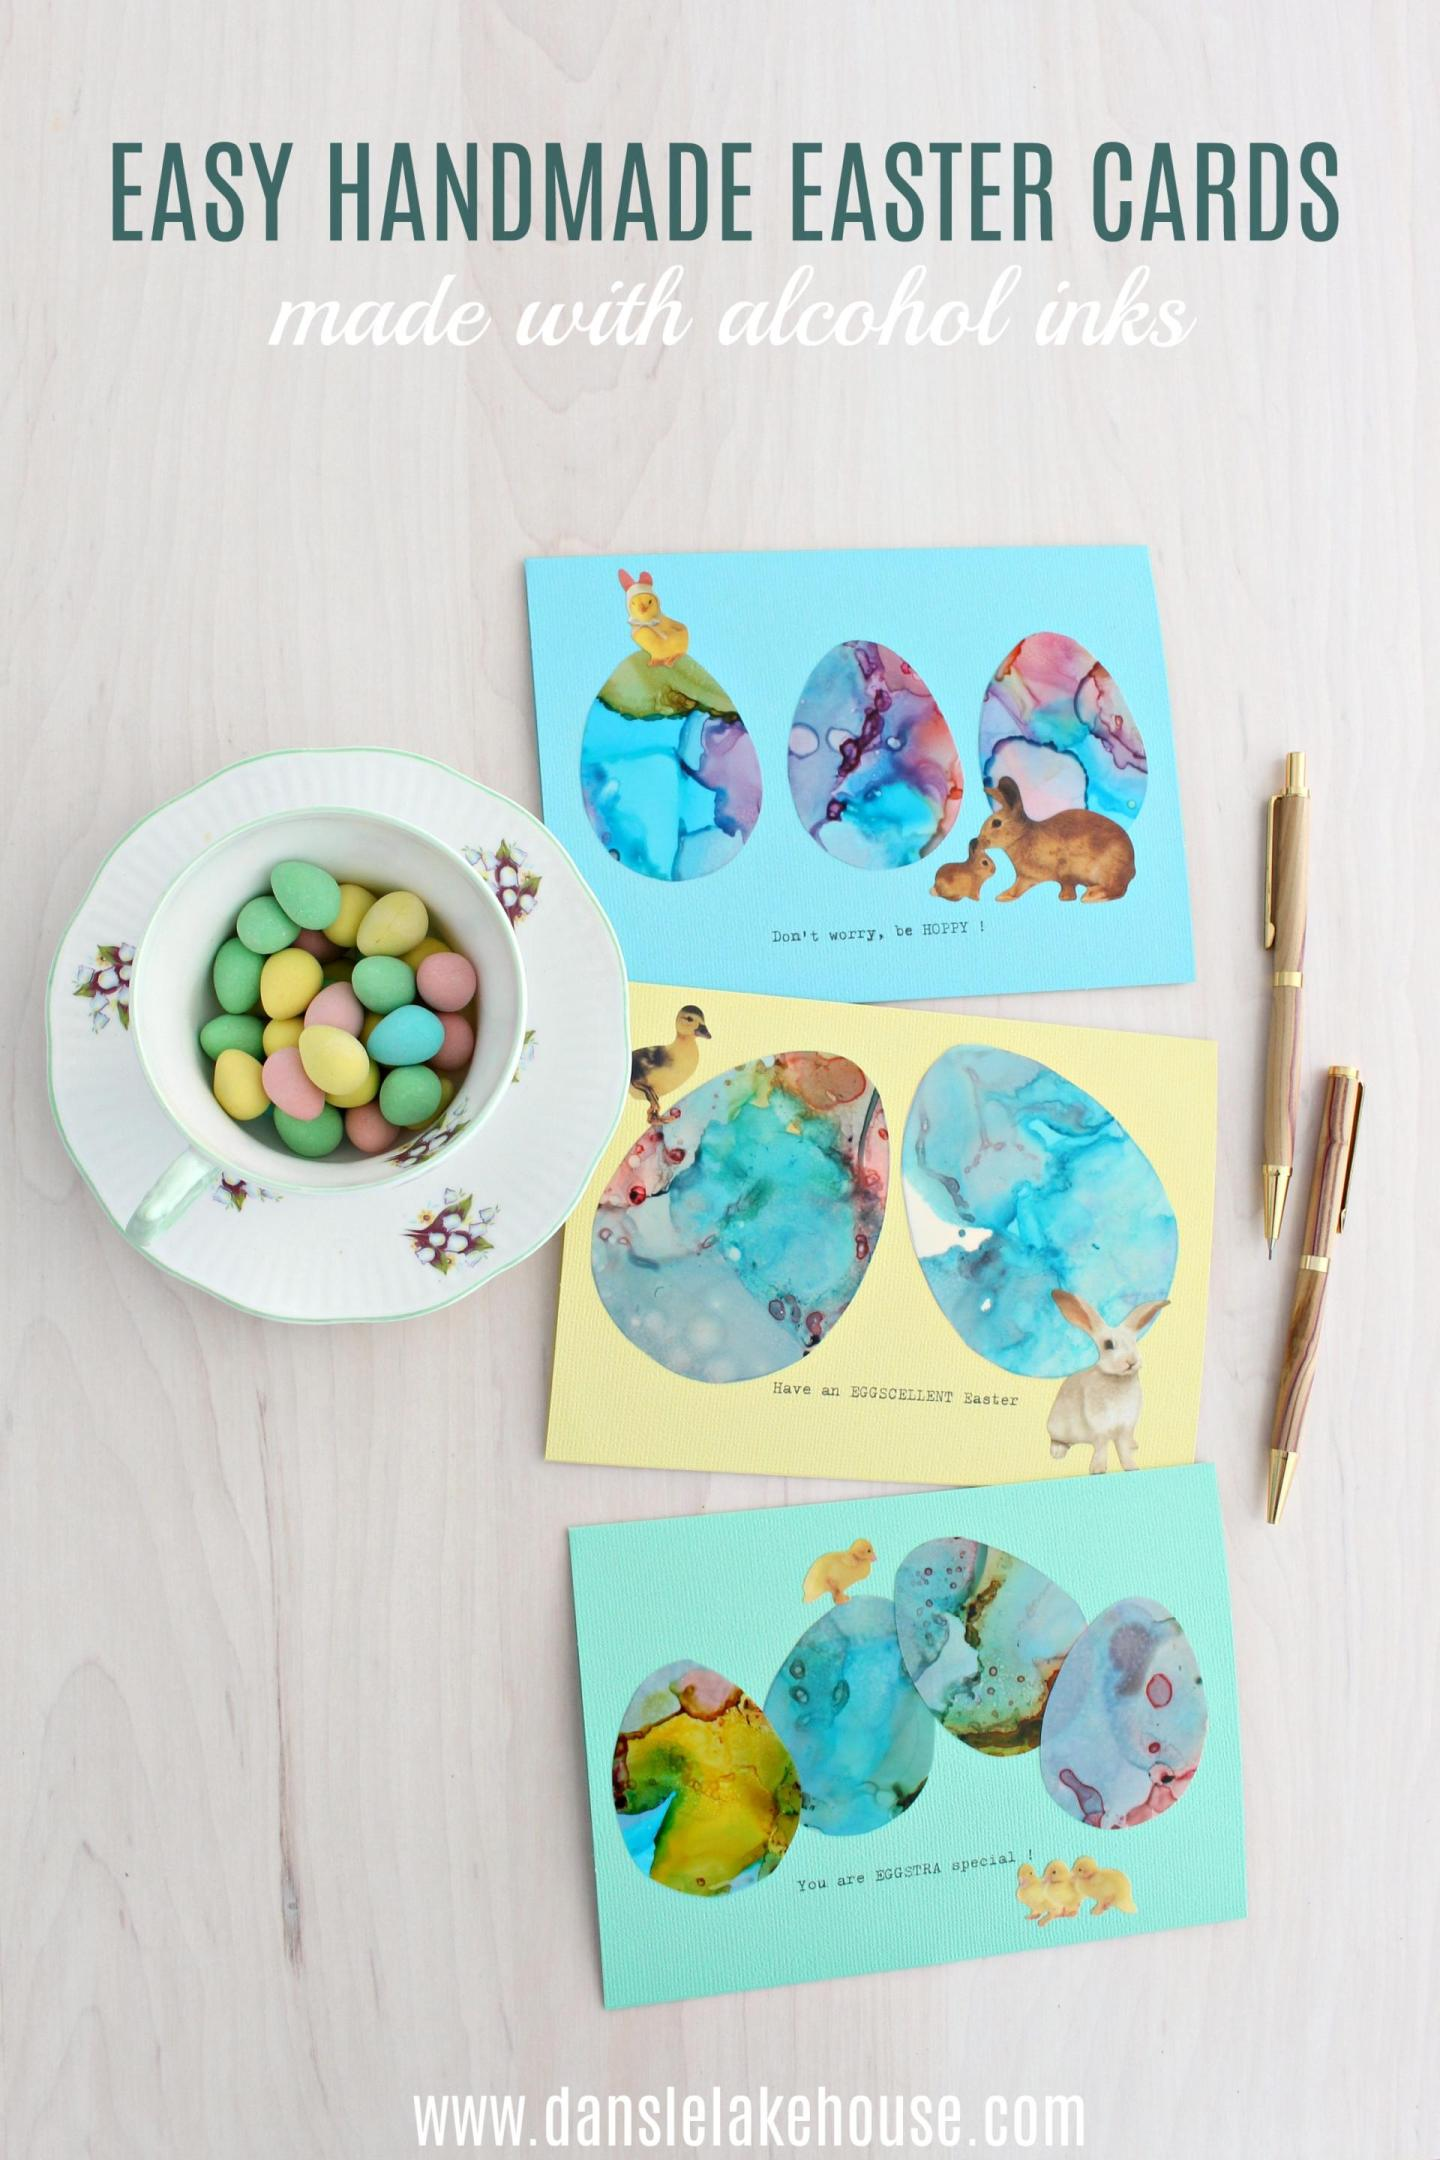 Handmade Easter cards with puns